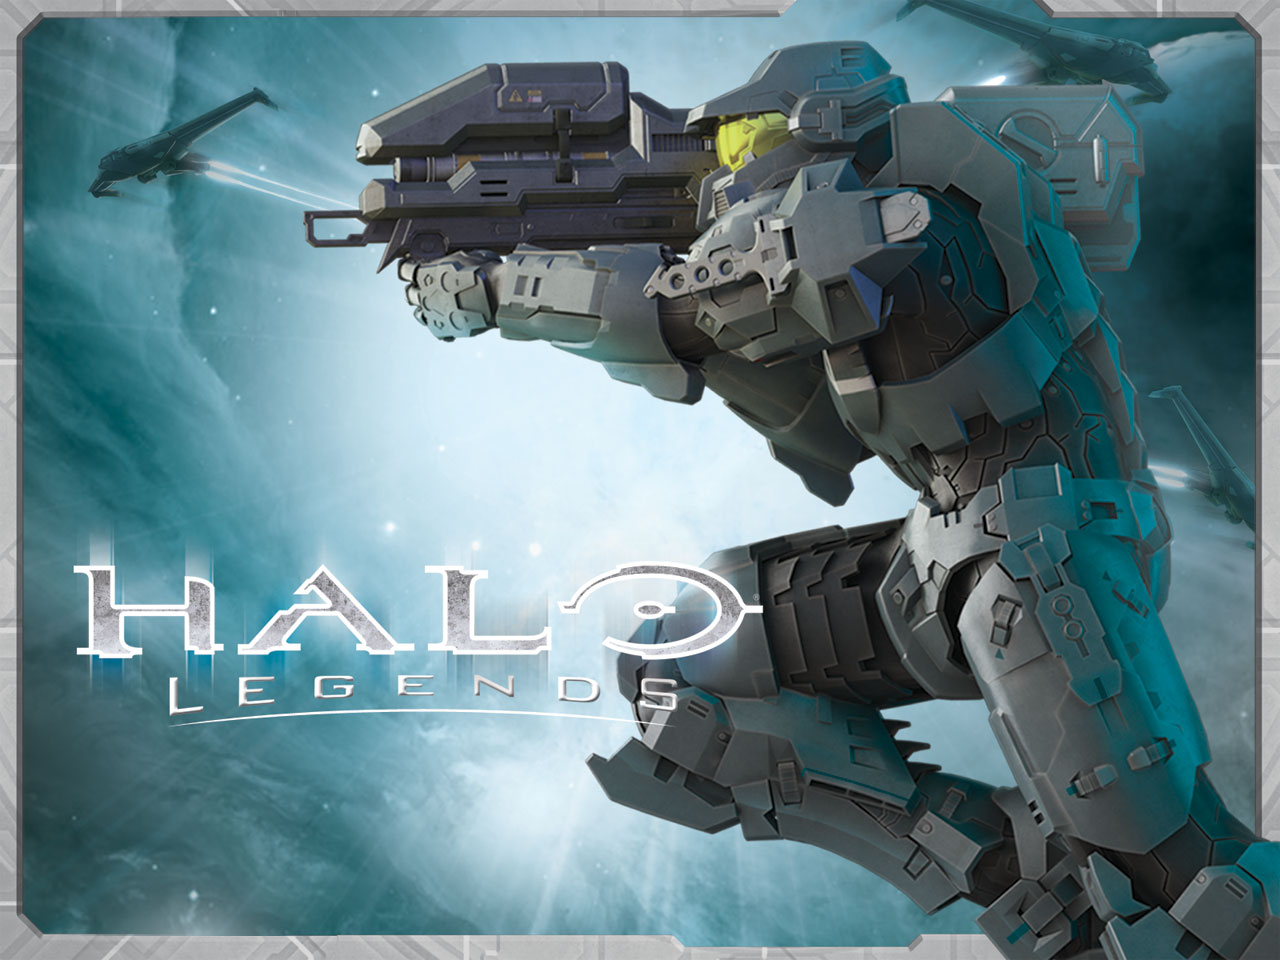 Halo Legends Wallpaper Posted By Ethan Tremblay